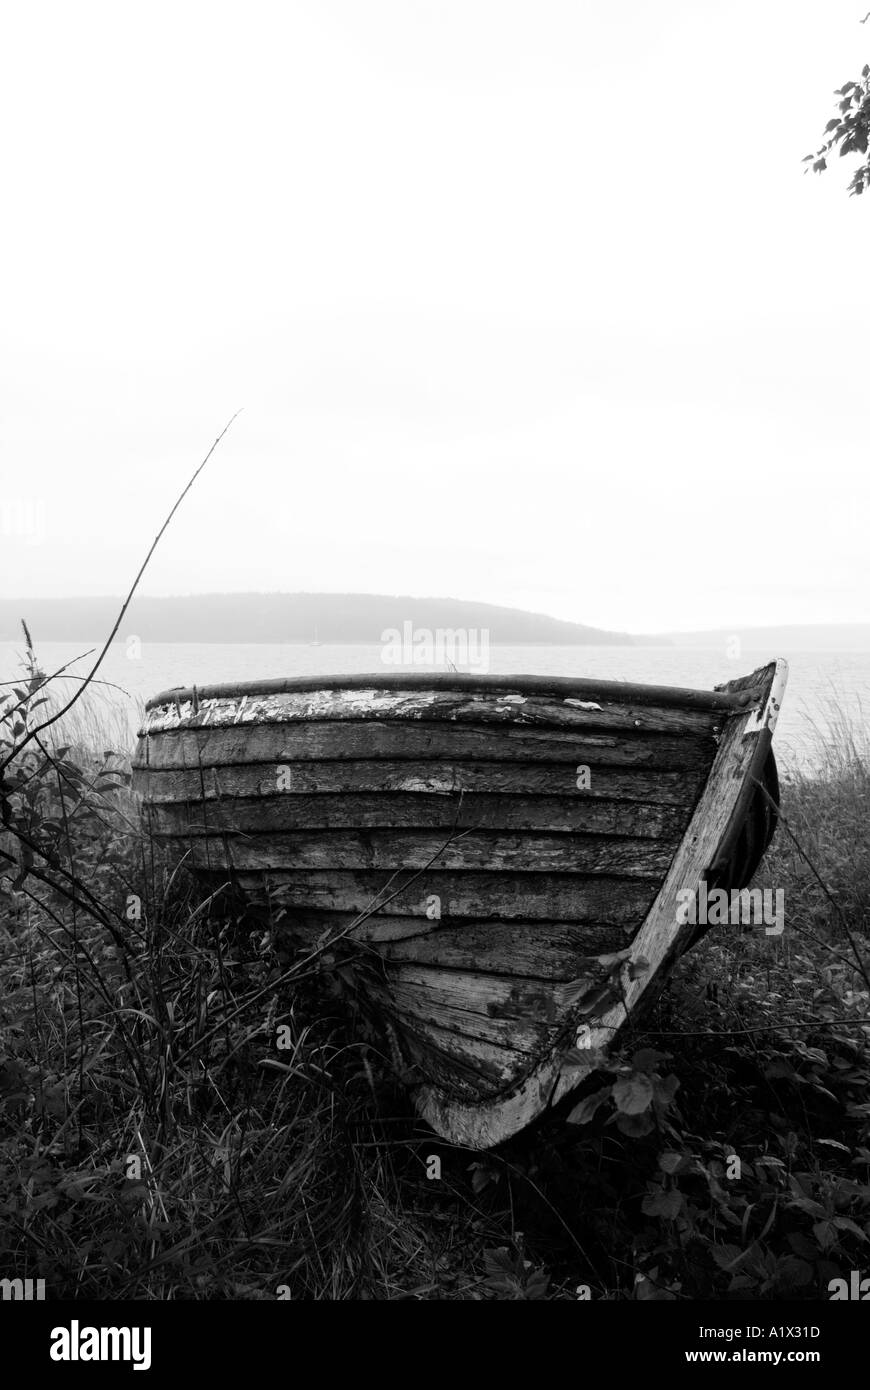 abandoned boat on stone beach deserted lonely desolate northern sweden lake swedish wood rot decay - Stock Image